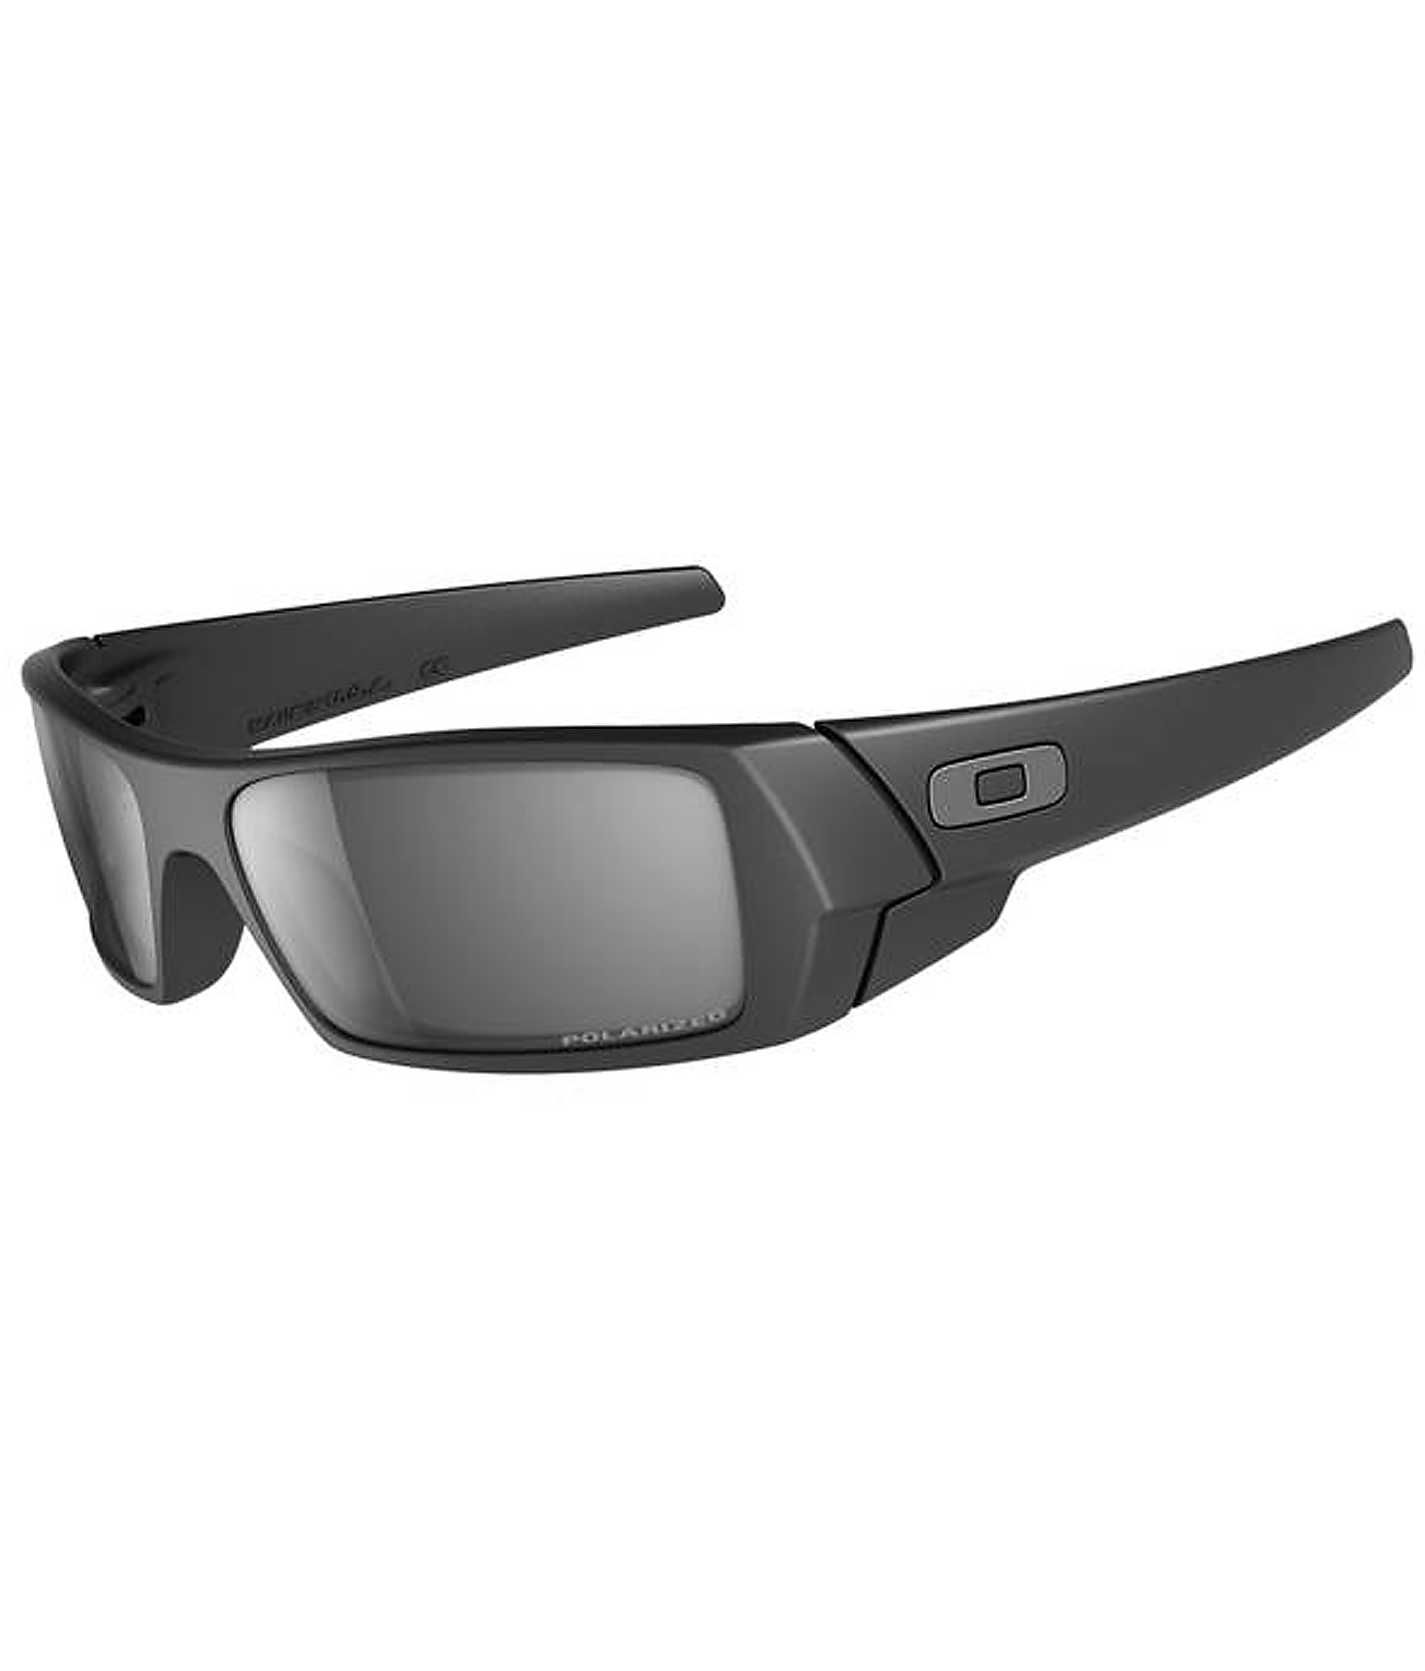 94276e1a27a2e Oakley Gascan Sunglasses - Men s Accessories